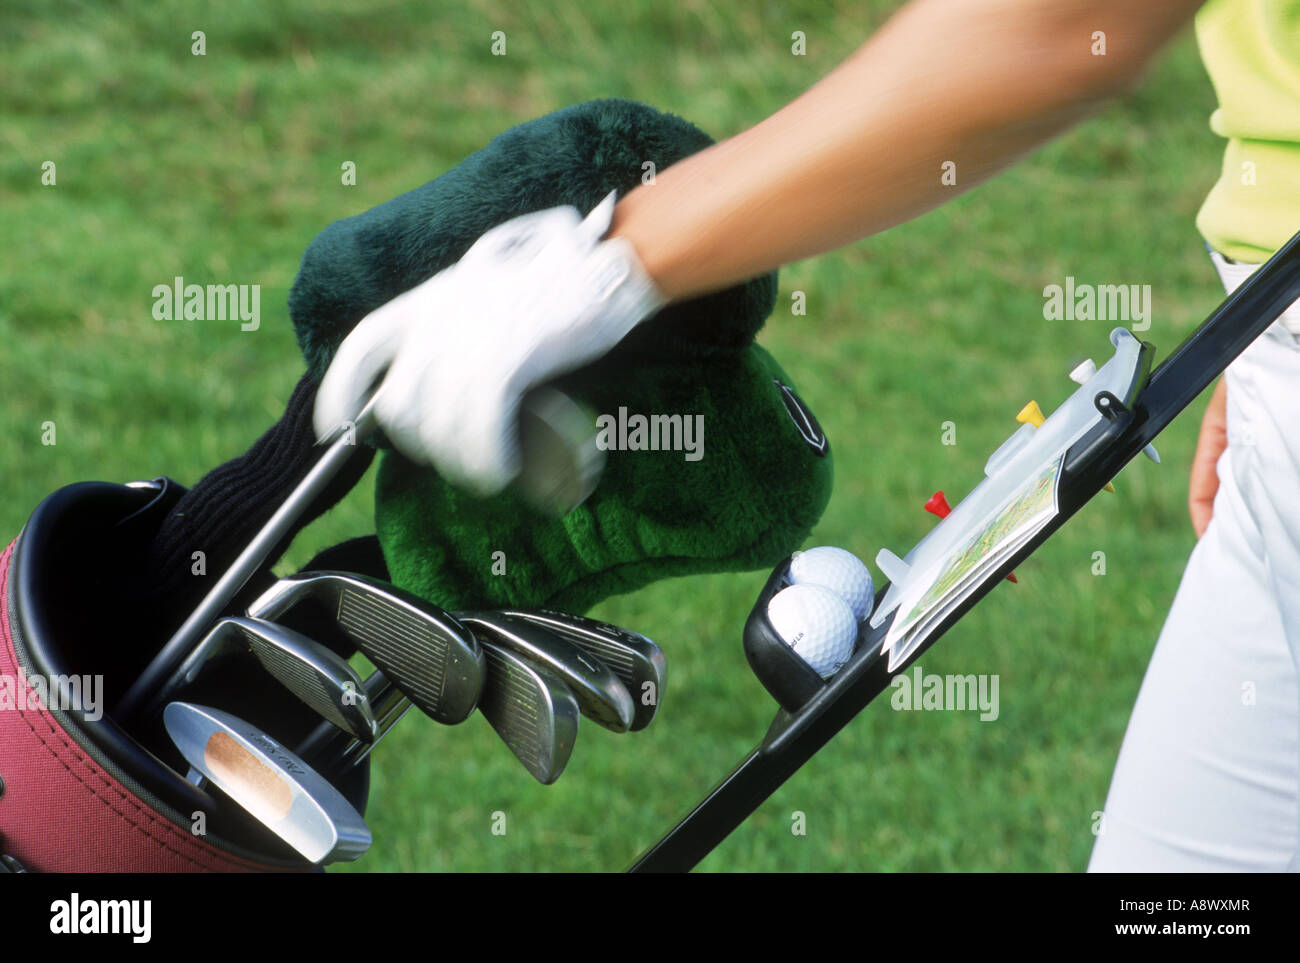 Golfer selecting club from golf bag - Stock Image